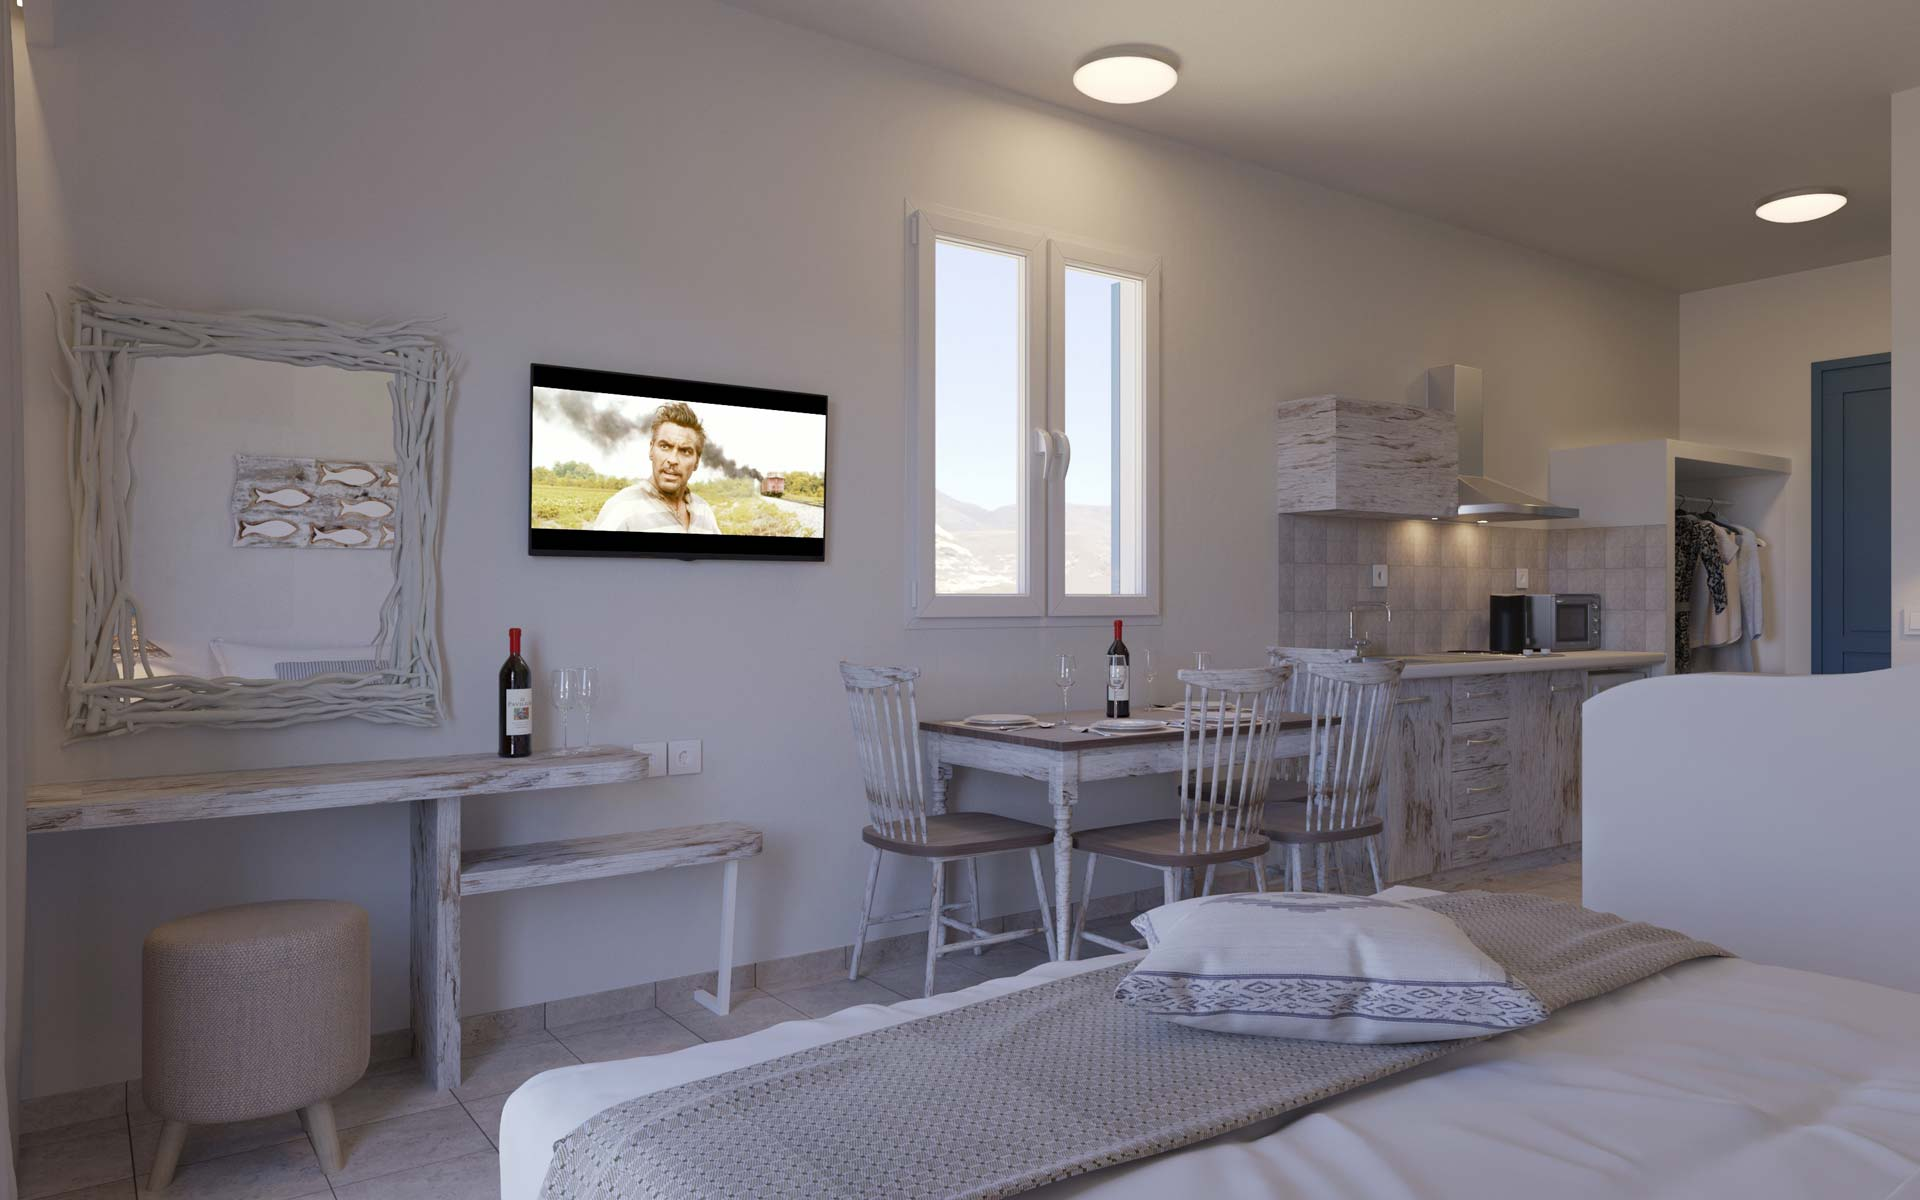 Agean-Sea-And-Acropolis-View--New-Renovated-Superior--kitchen-and-inside-Area-1B--6B